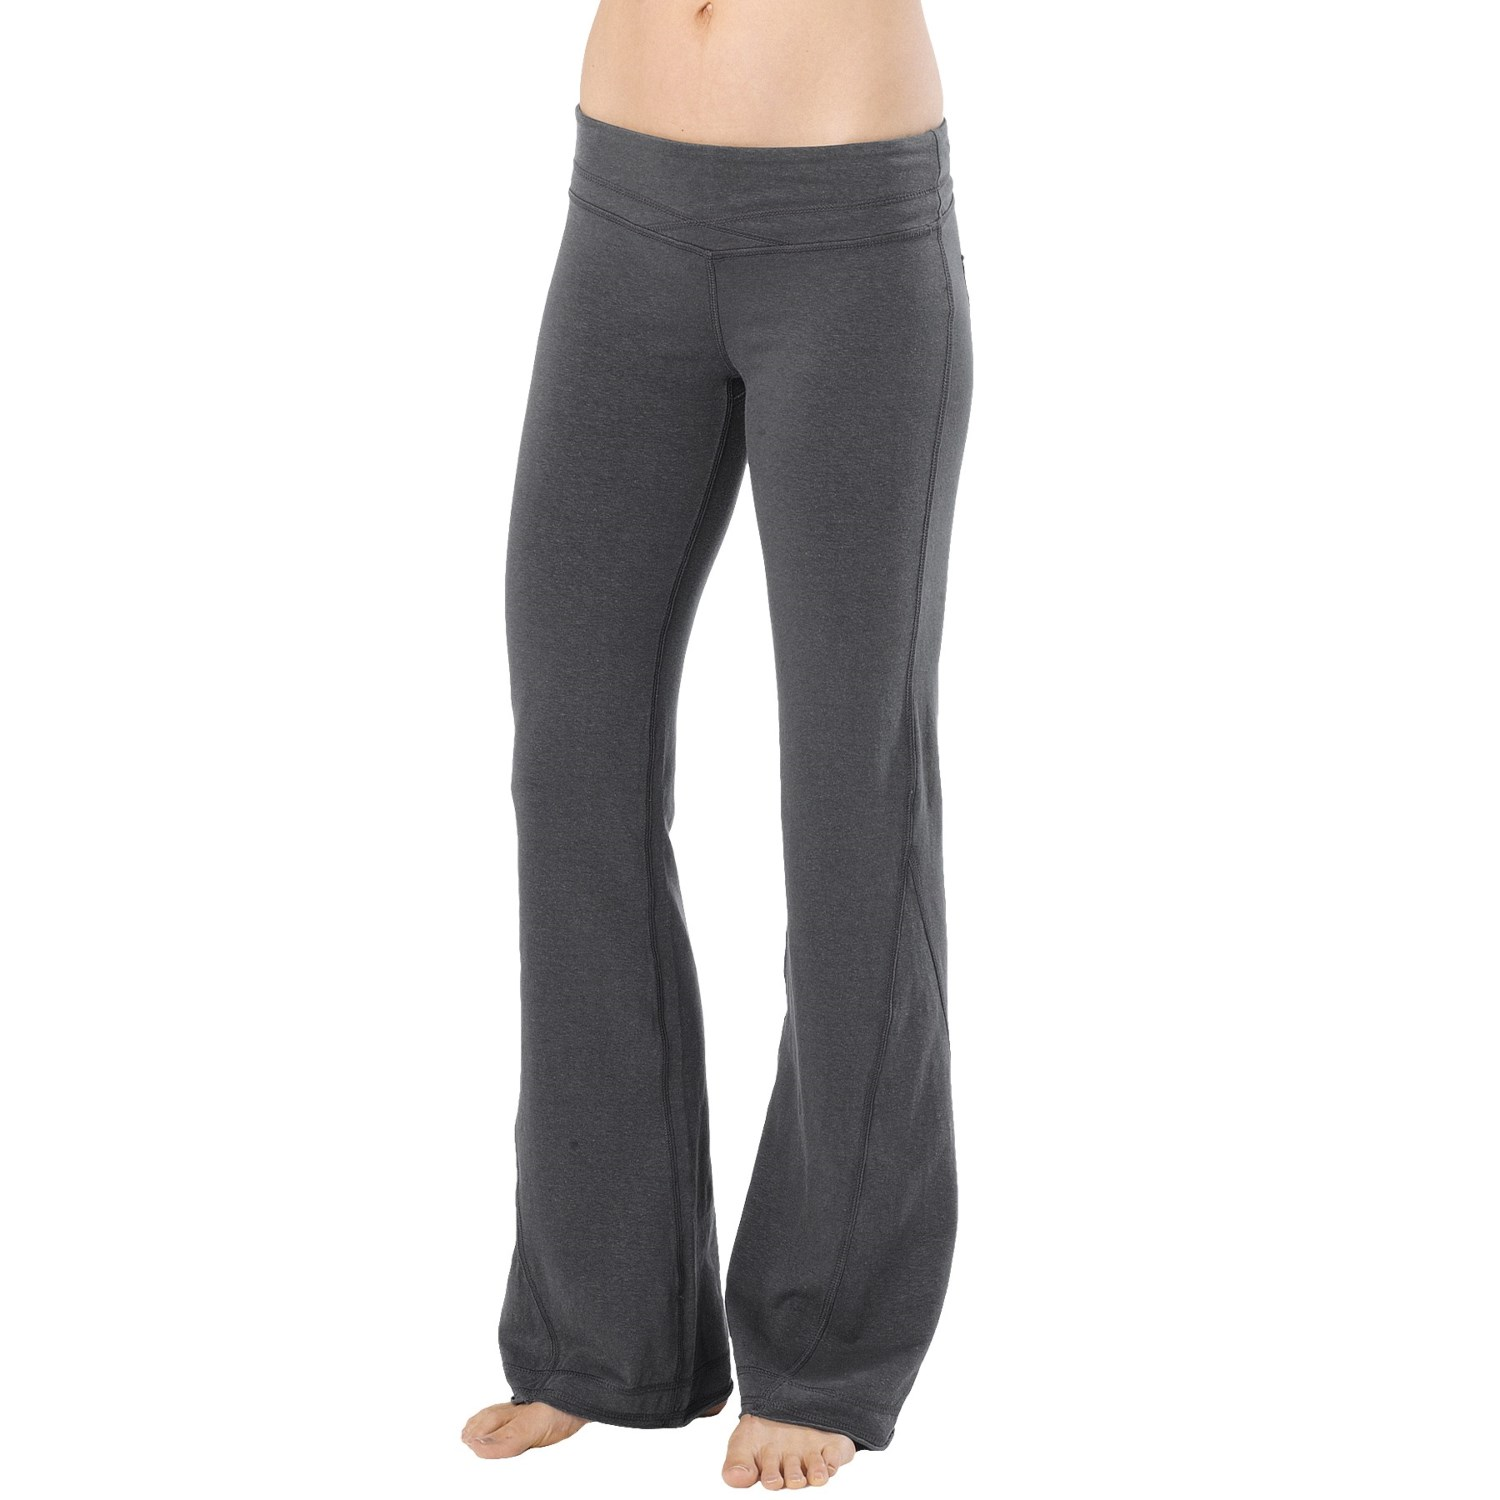 31 elegant Womens Emt Pants Low Rise – playzoa.com